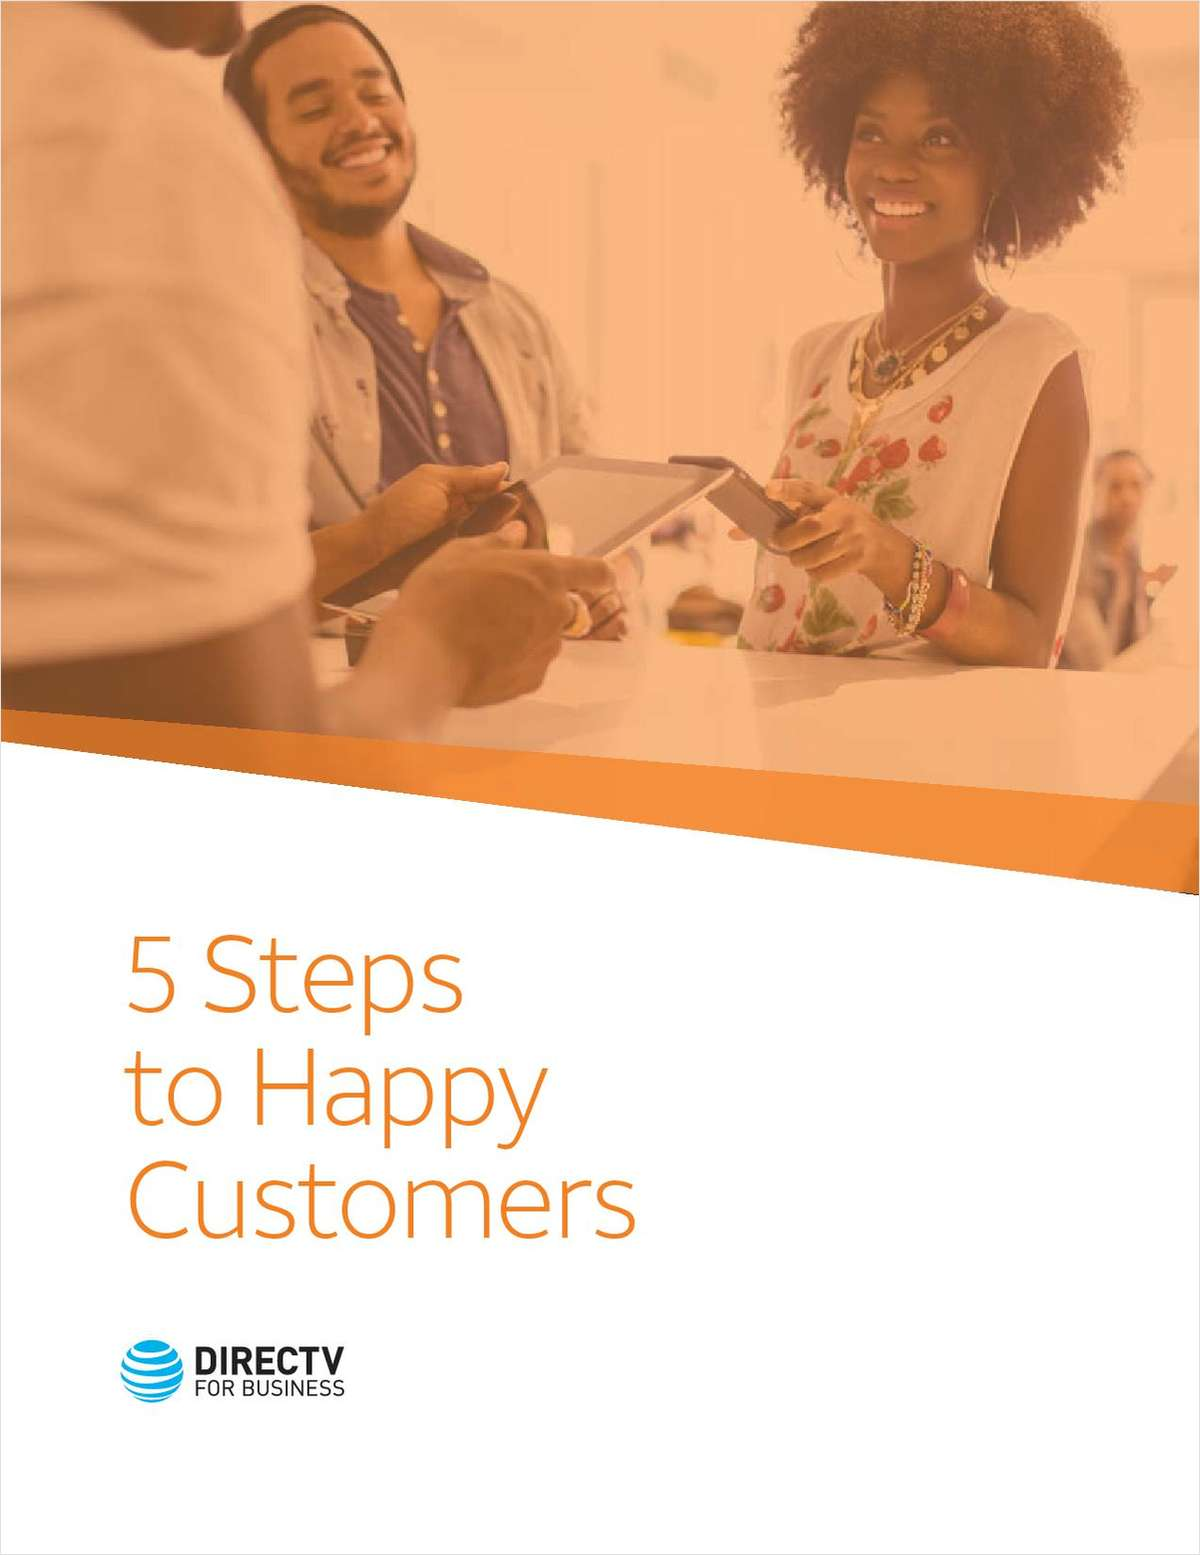 5 Steps to Happy Customers